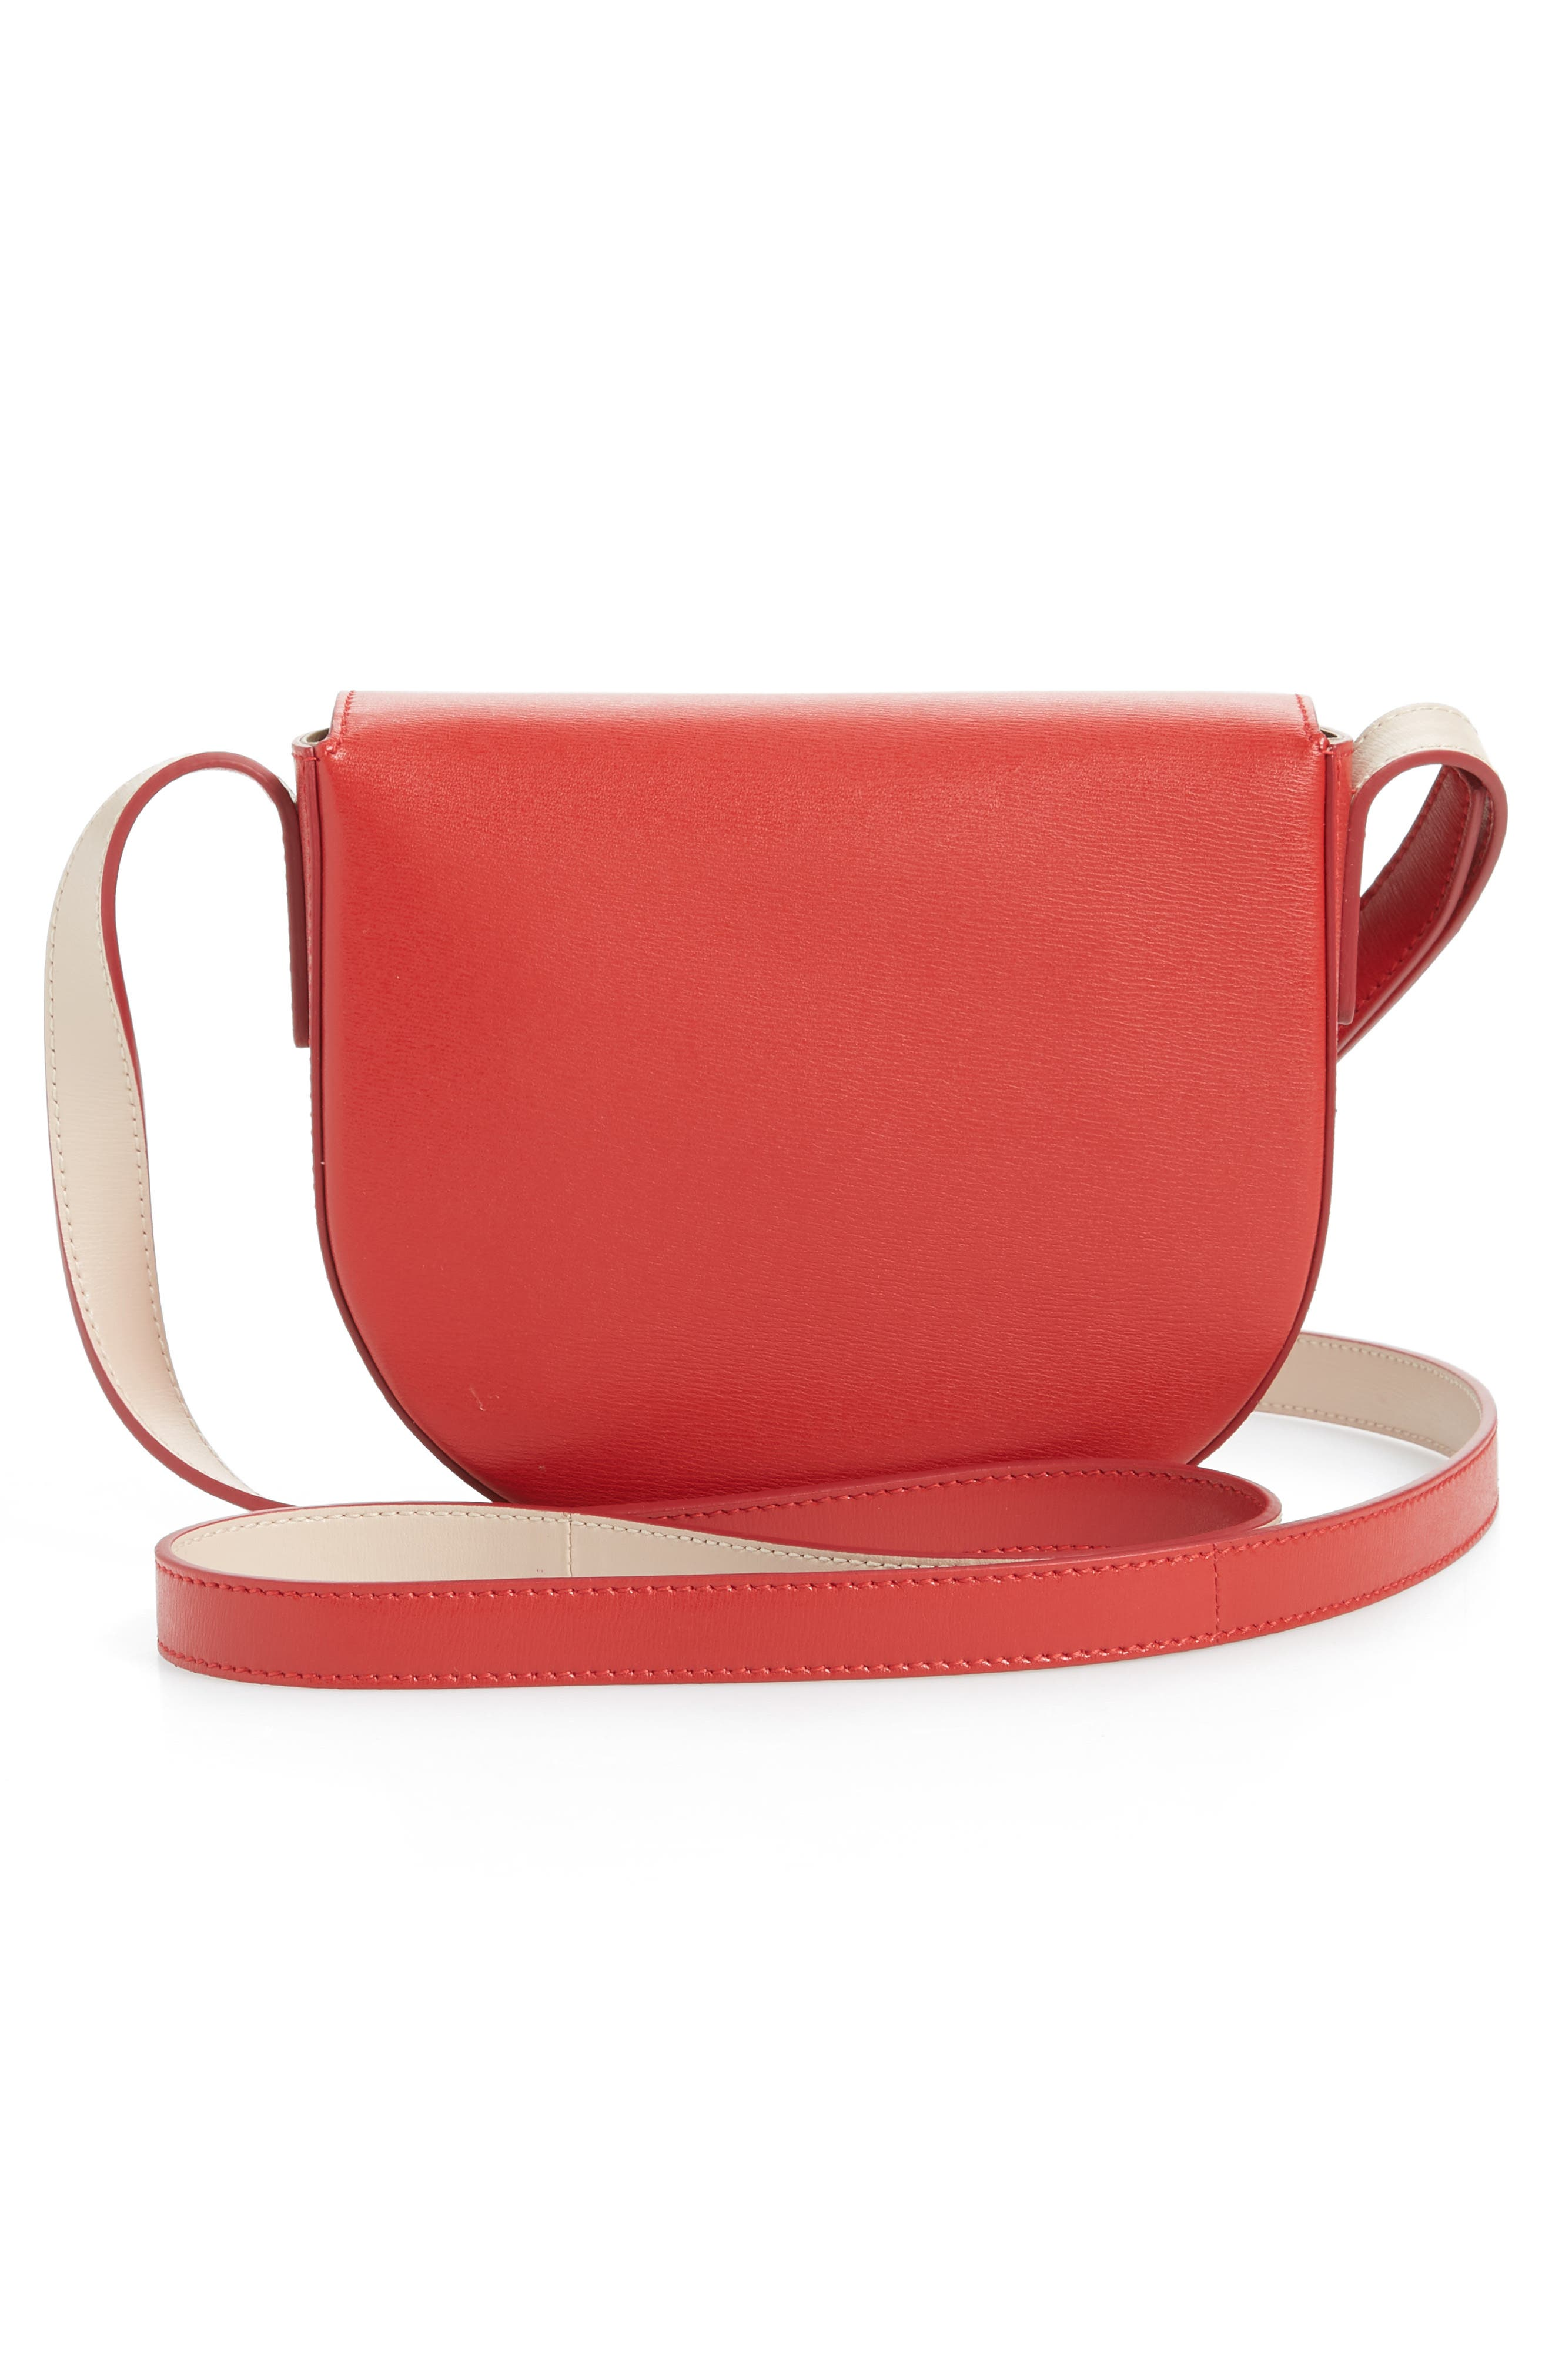 Quilted Gancio Crossbody Bag,                             Alternate thumbnail 3, color,                             LIPSTICK RED